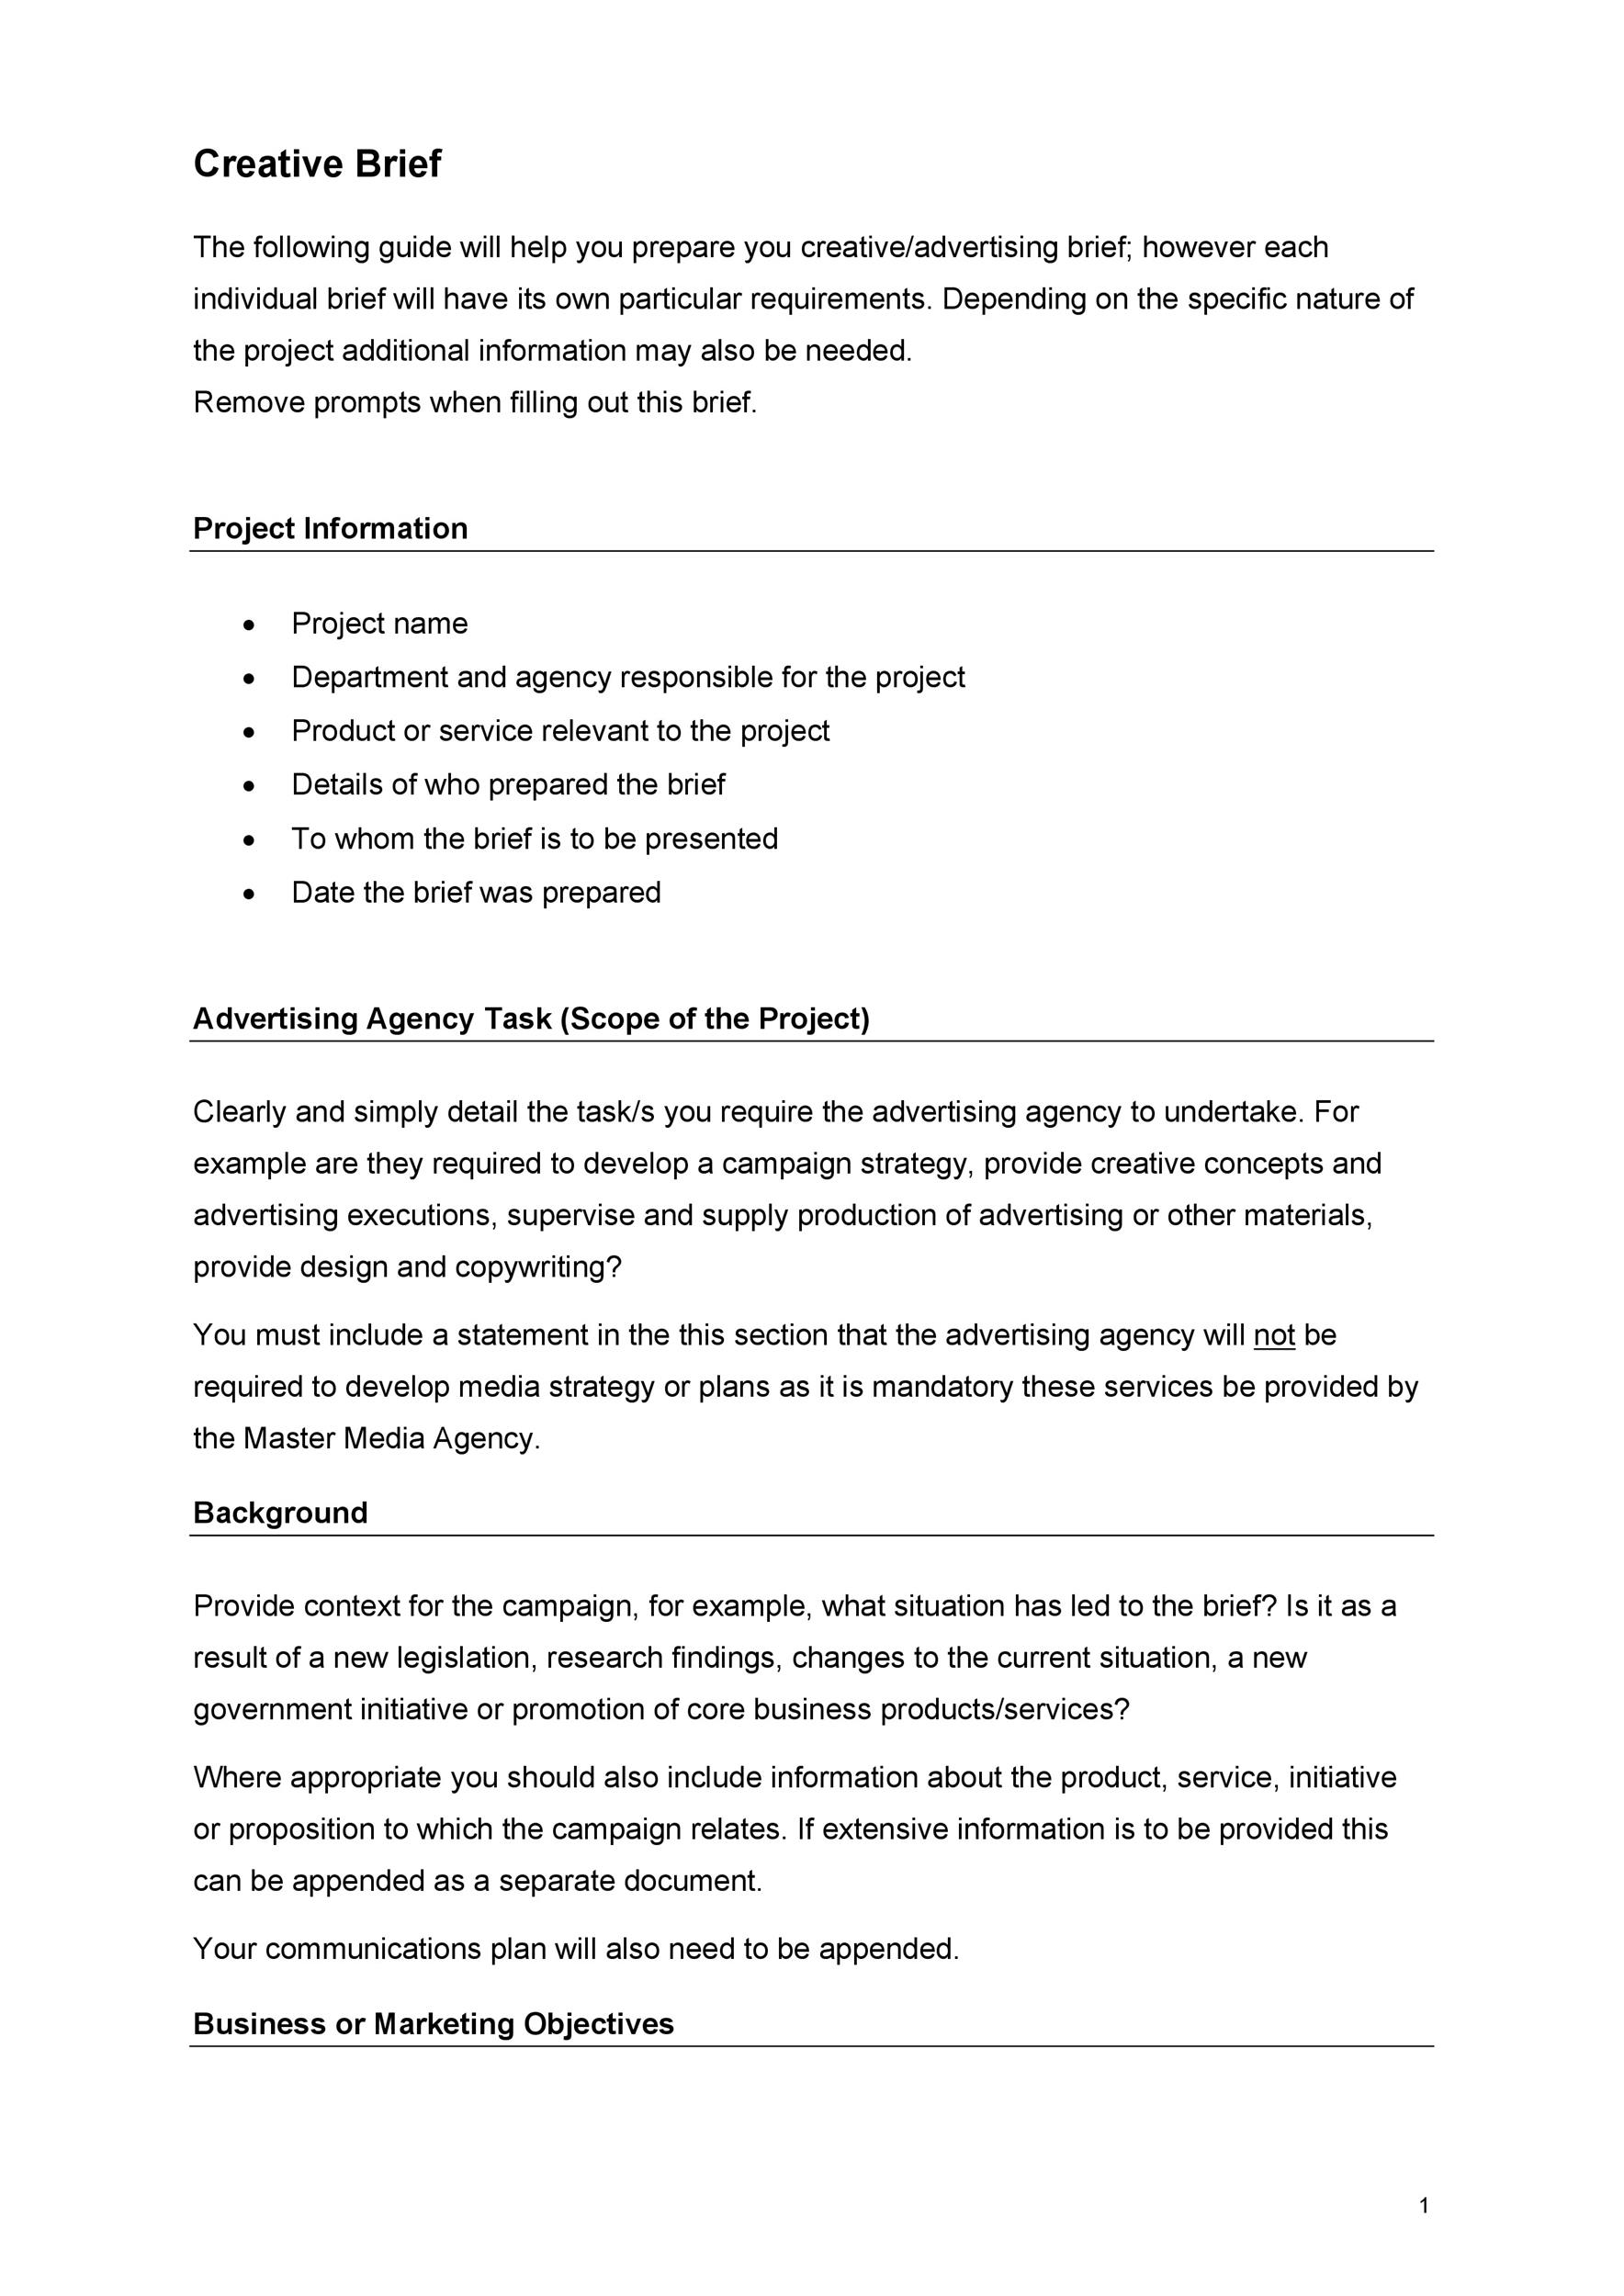 Modern creative brief templates model example resume and for Ogilvy creative brief template